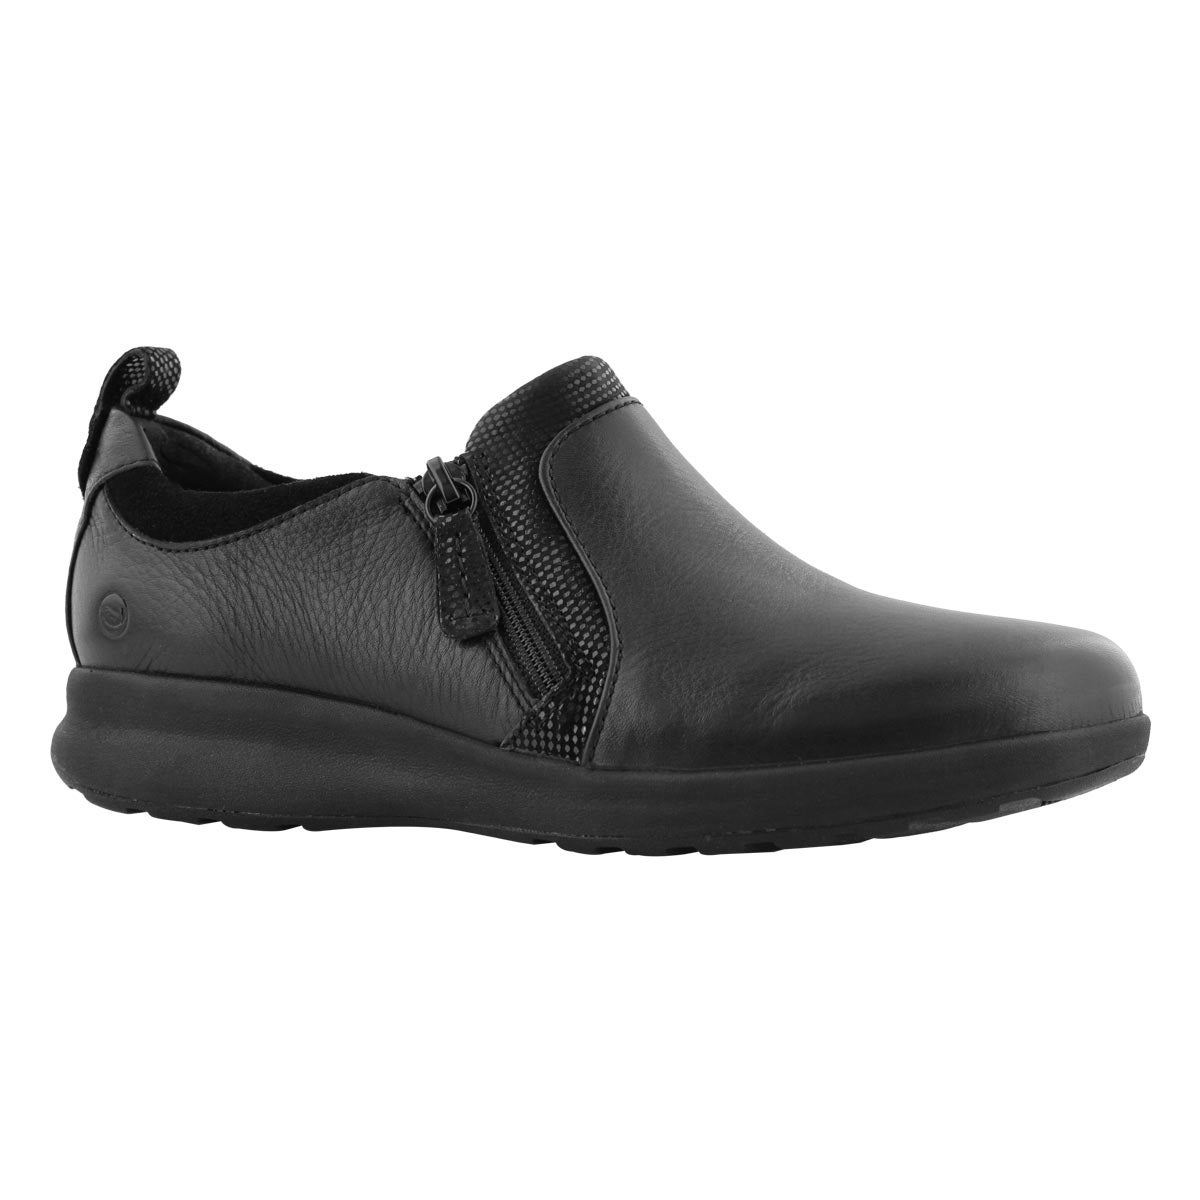 Women's UN ADORN ZIP black casual shoes